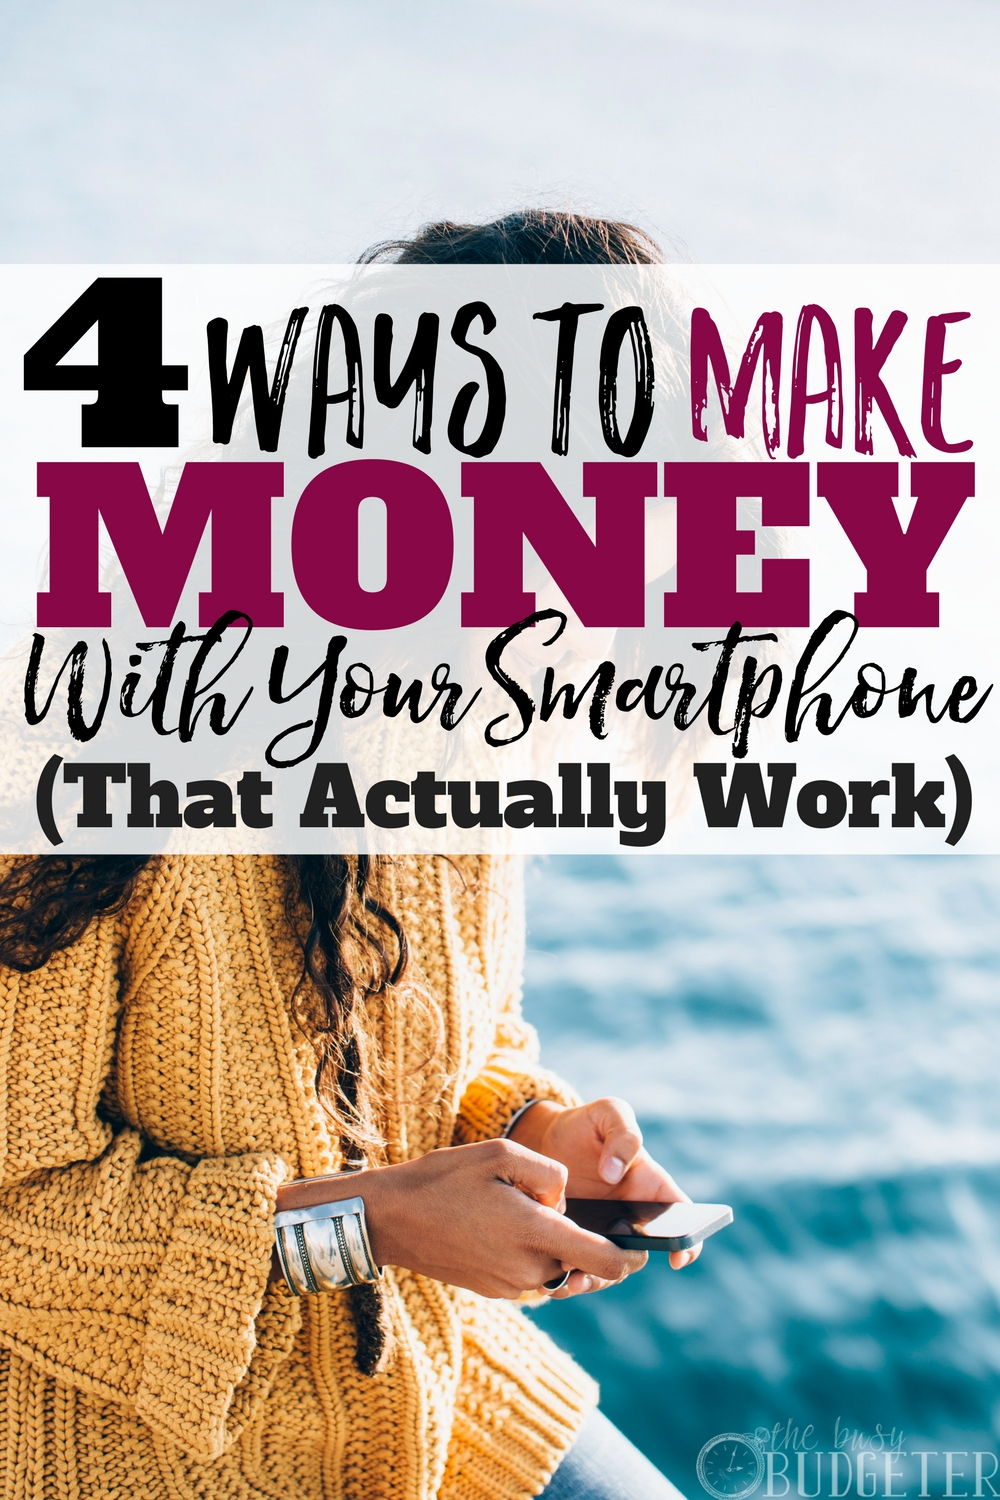 4 ways to make money with your smartphone that actually work